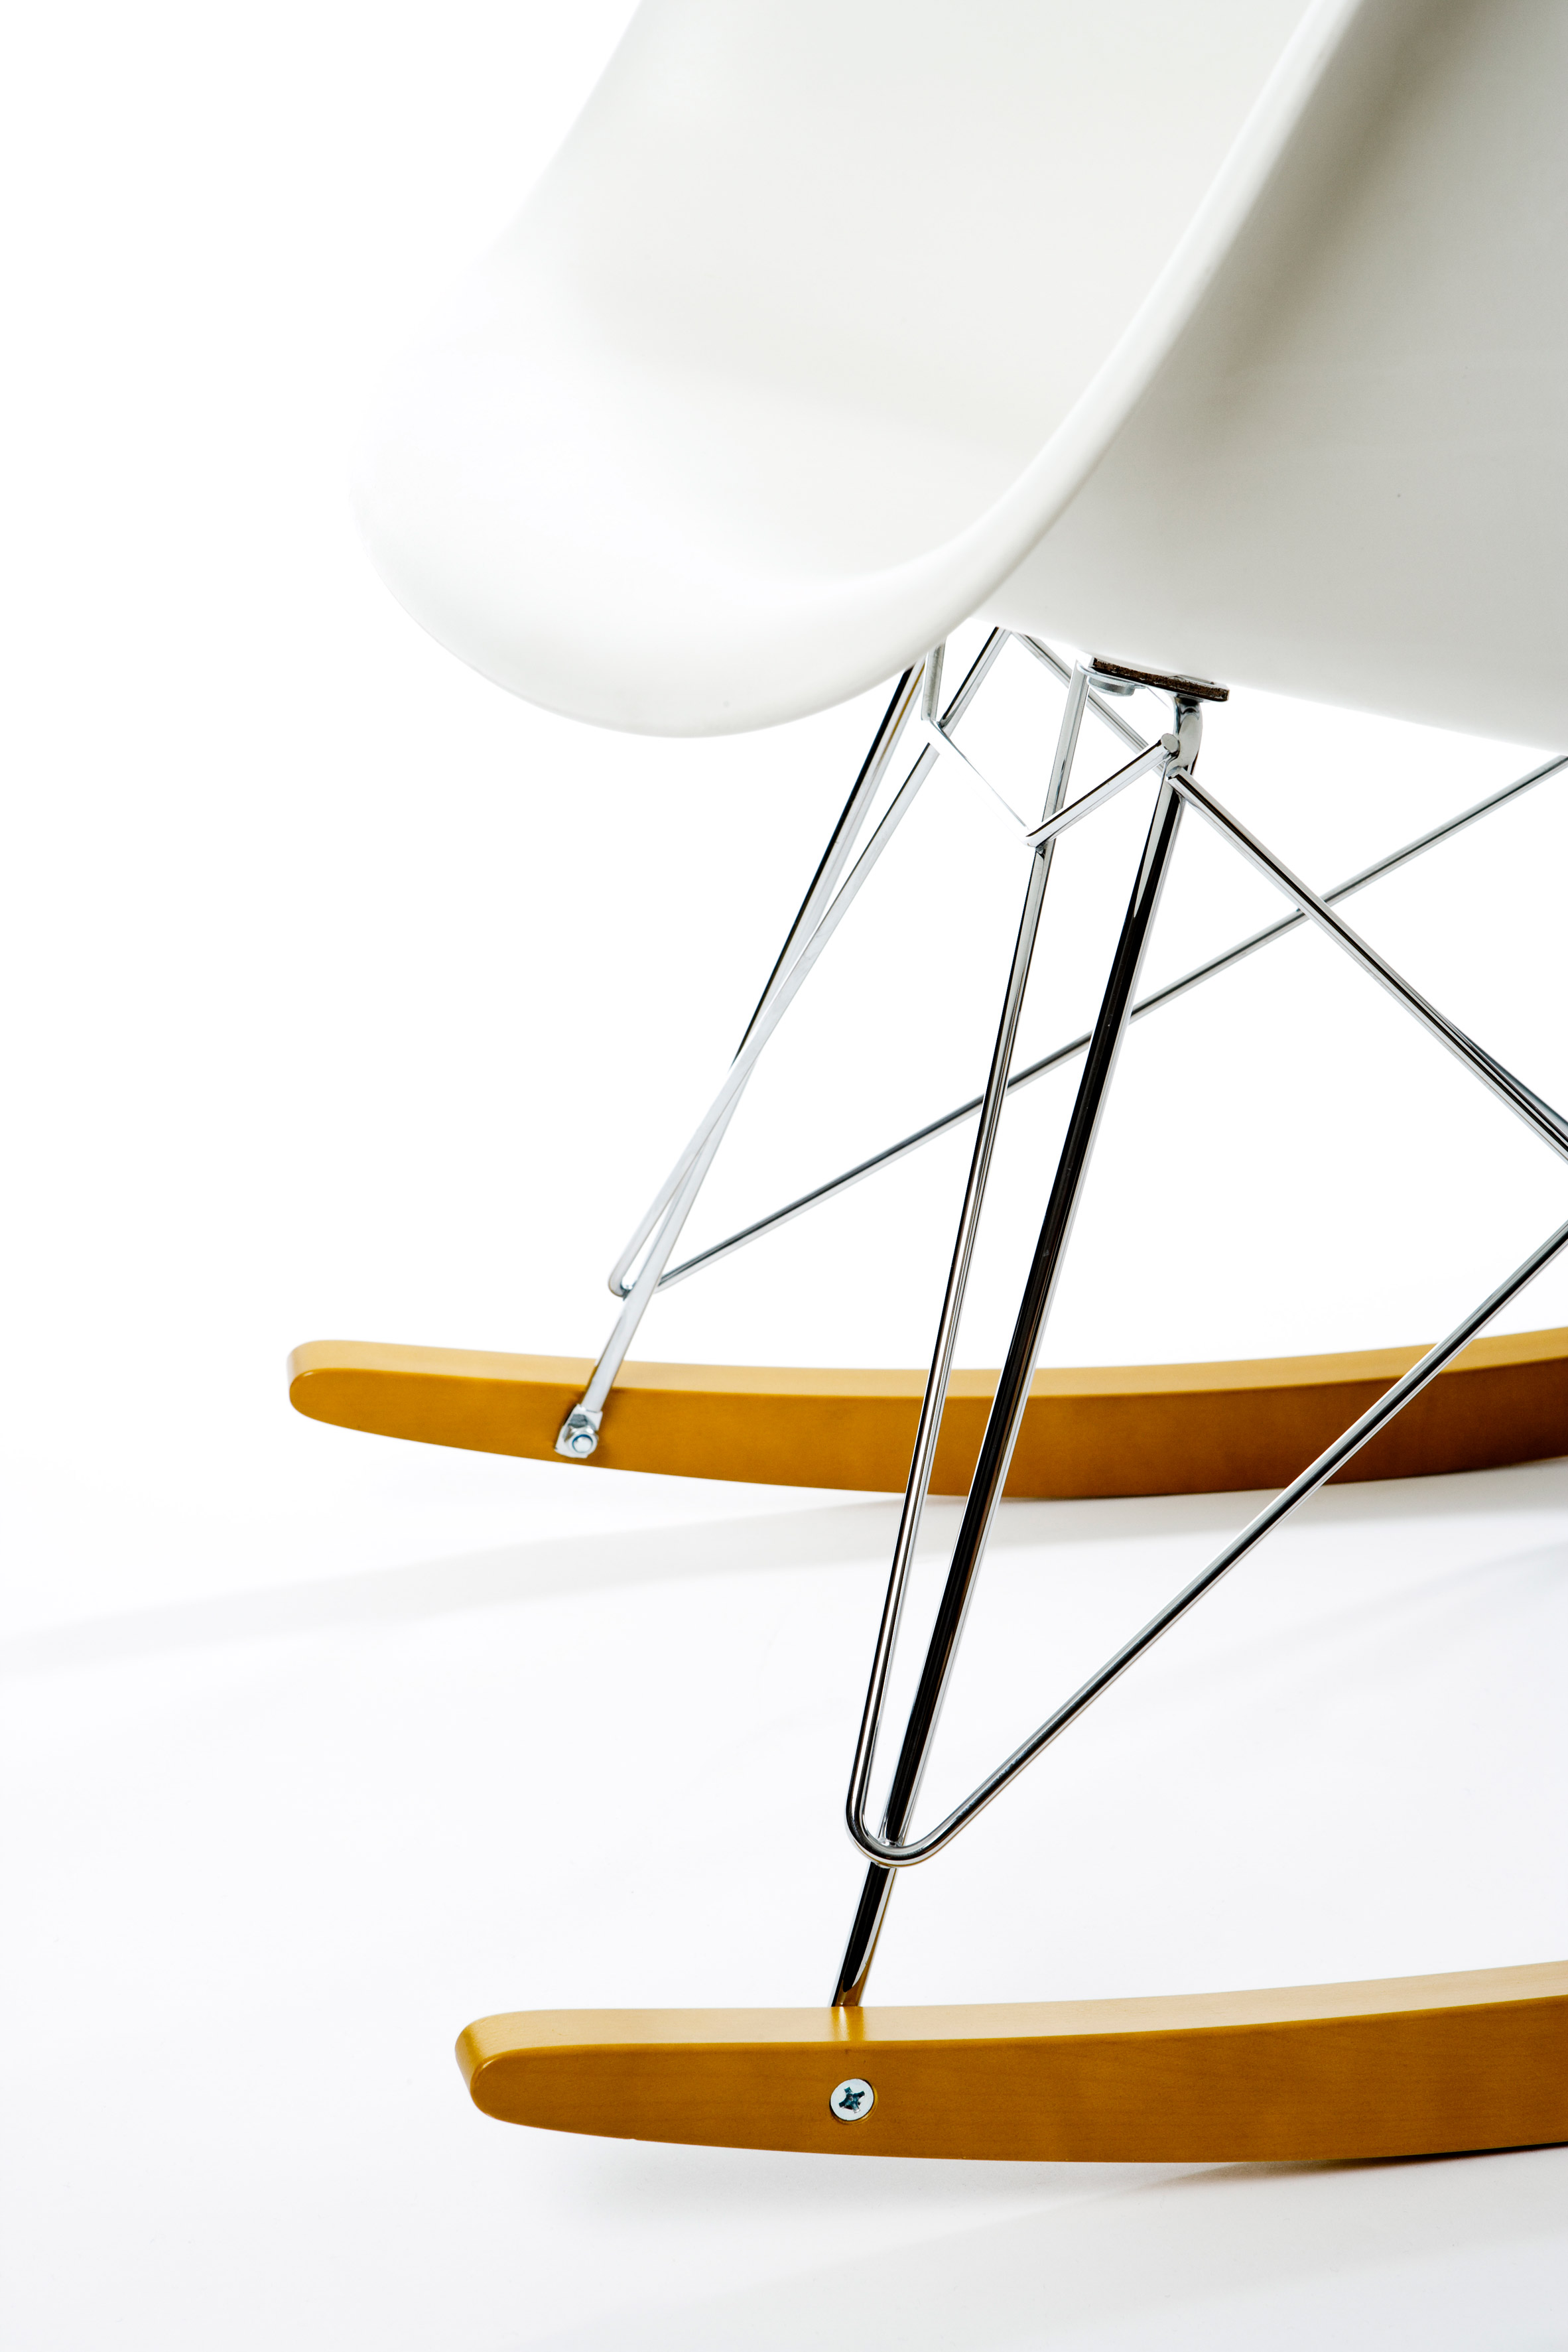 Competition: win an Eames RAR rocking chair from Vitra